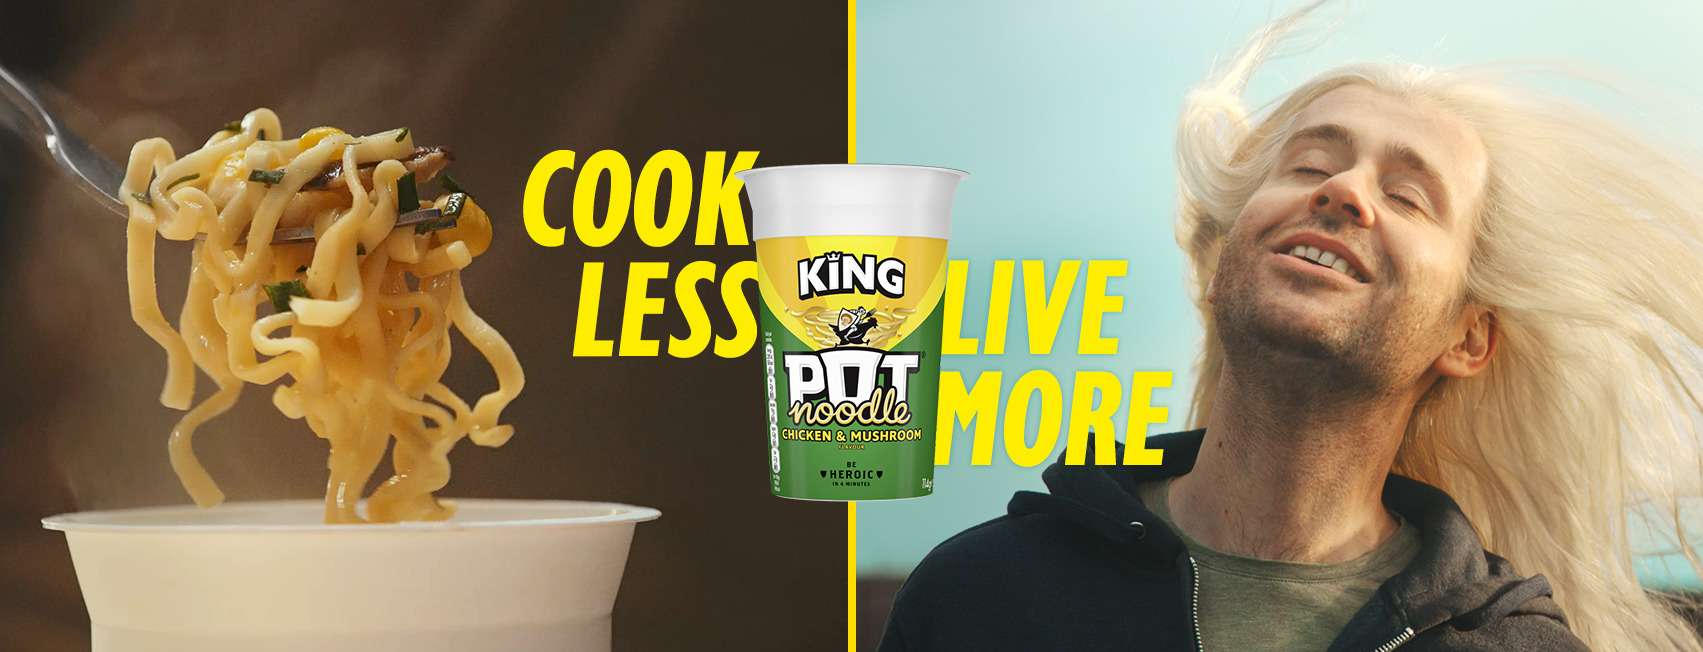 Cook Less Live More